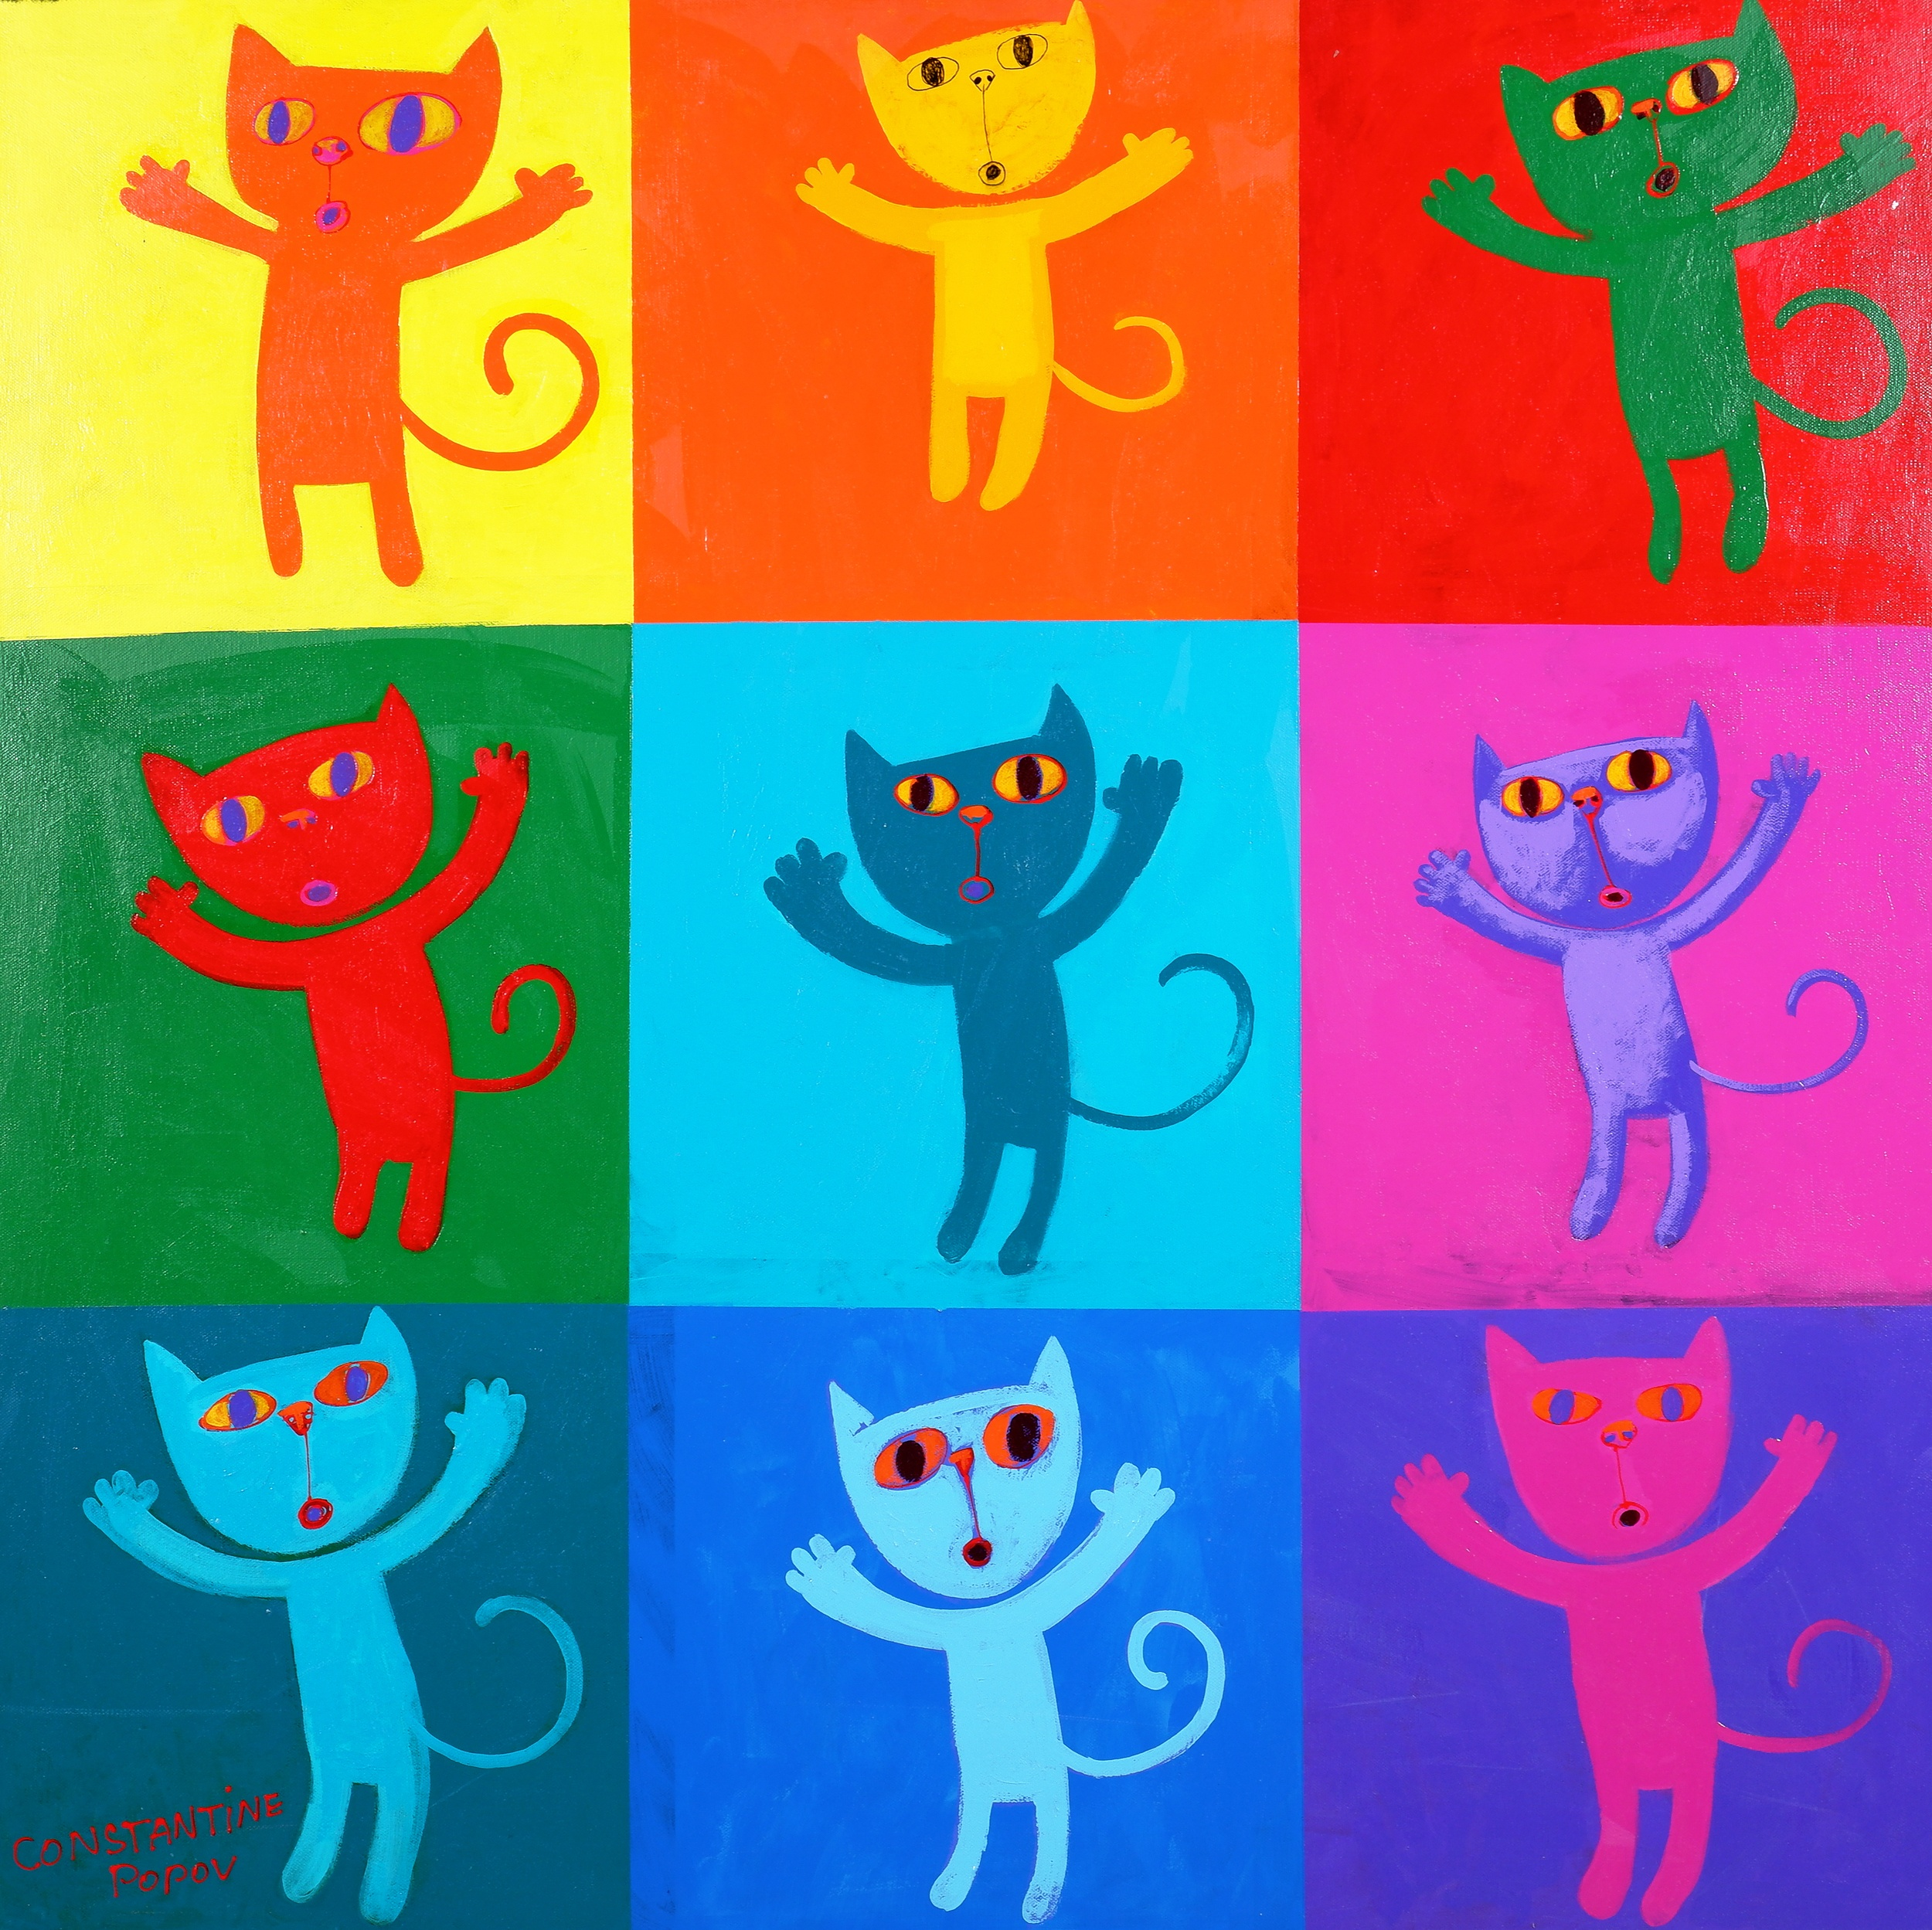 'Constantine Popov (born 1965), Untitled (Cats), Synthetic Polymer Paint on Canvas'